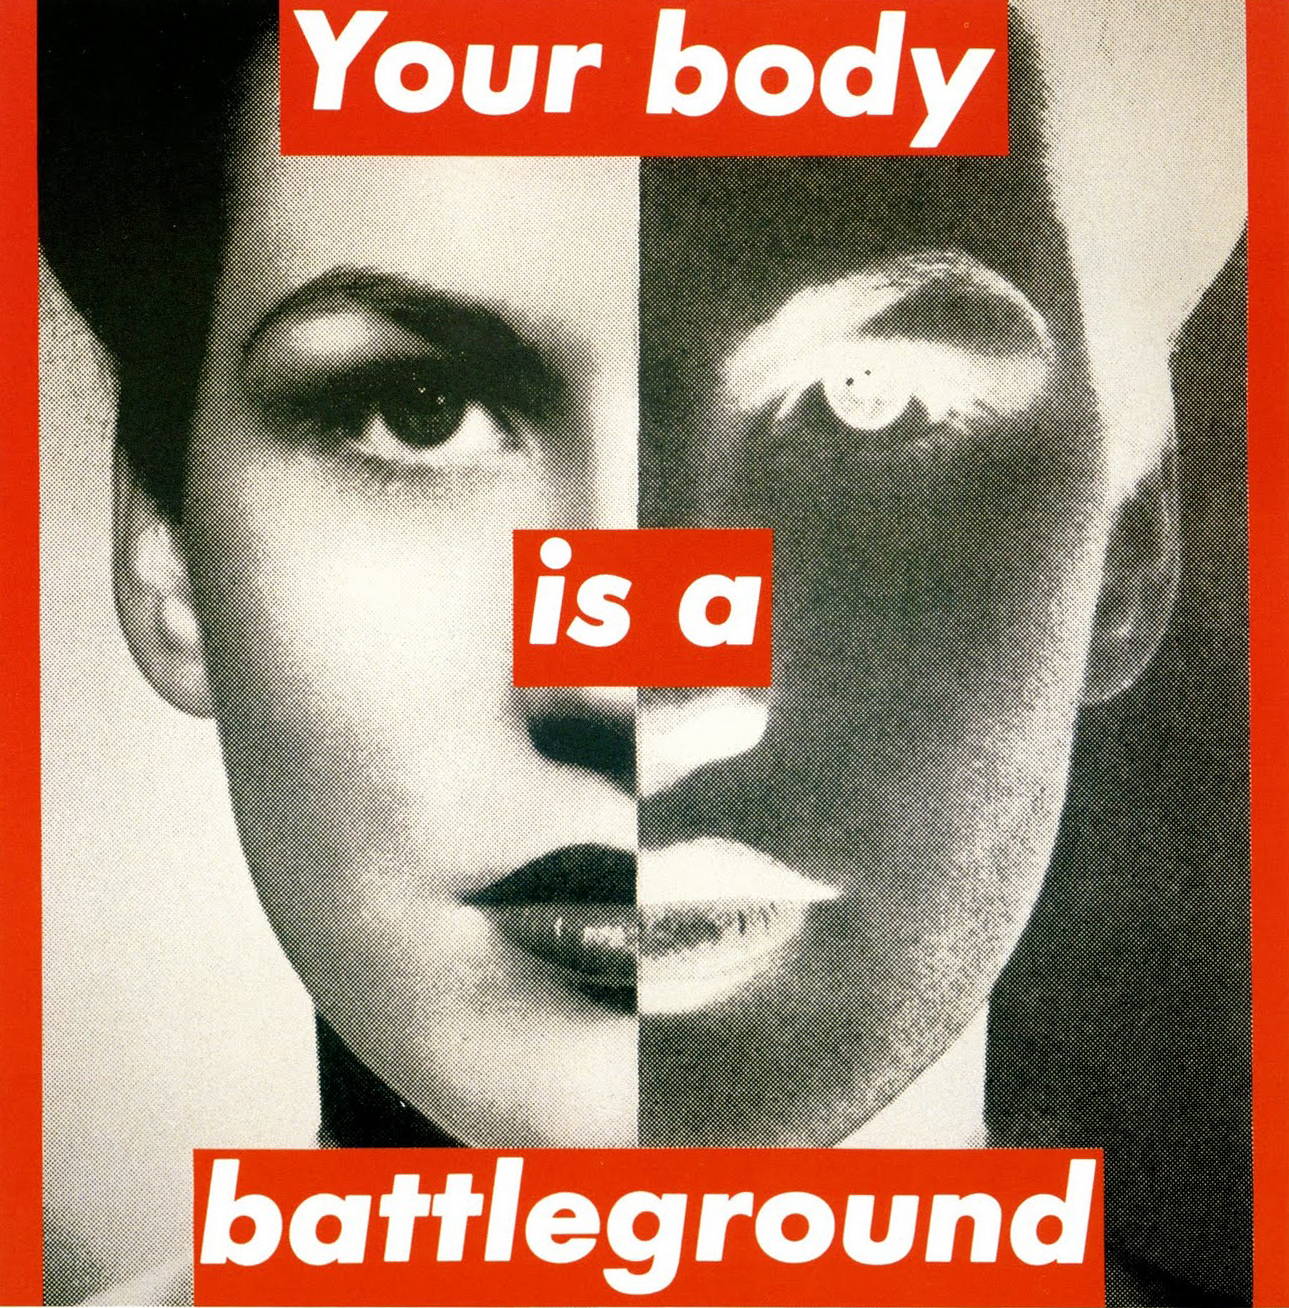 10.barbara-kruger-your-body-is-a-battleground-19891